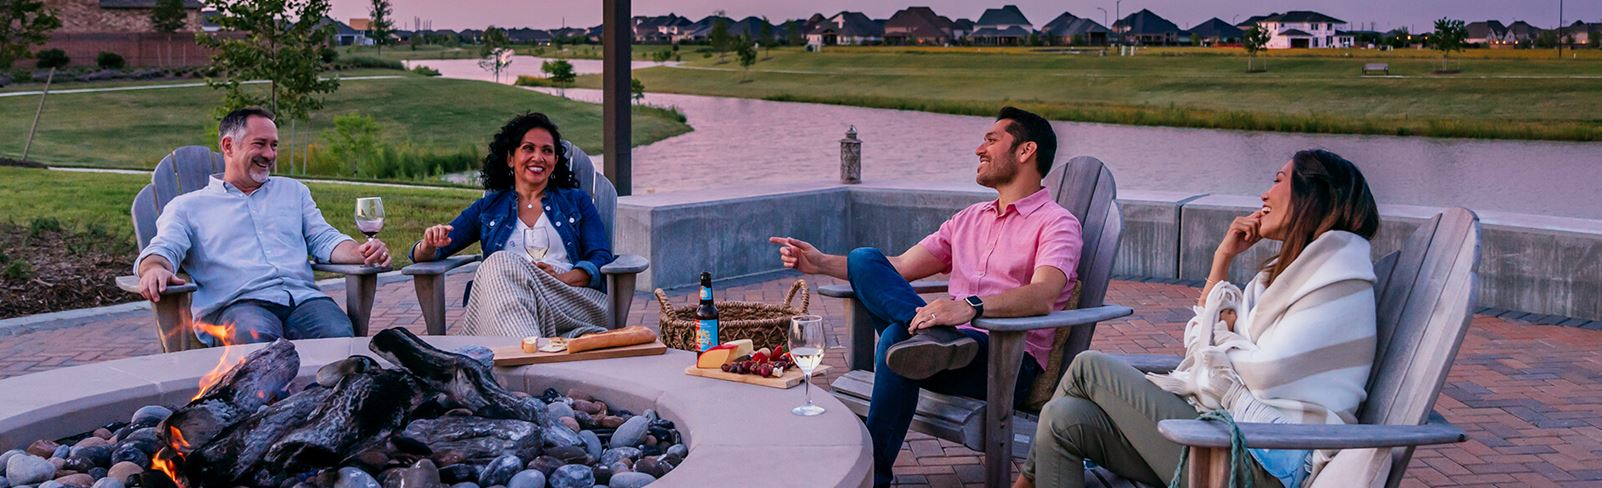 Residents enjoying amenities in Elyson master-planned community Katy, TX